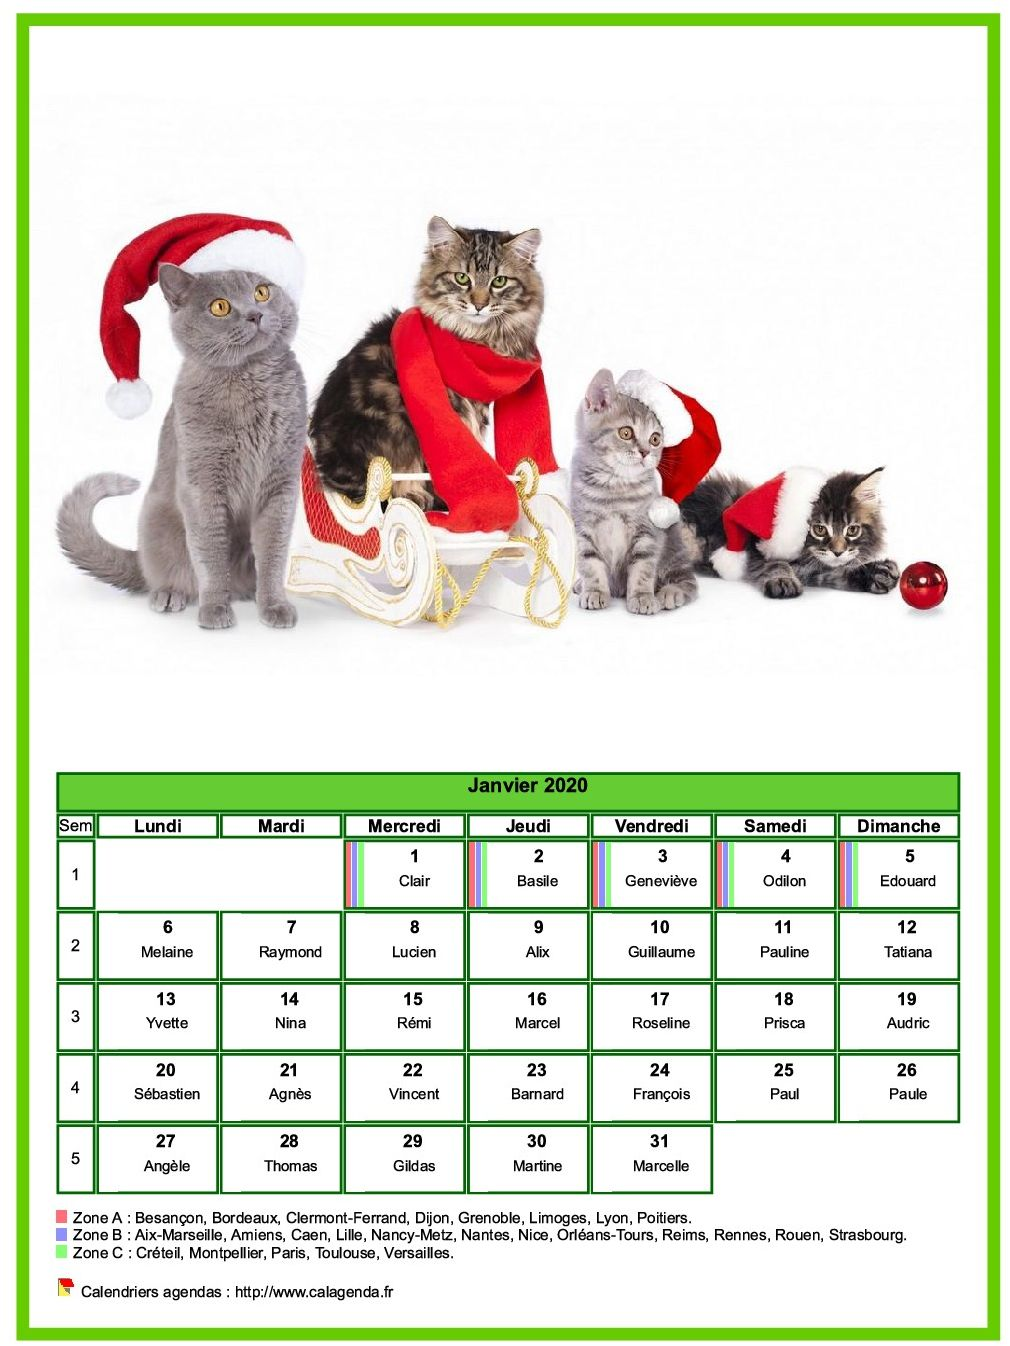 Calendrier janvier 2020 chats